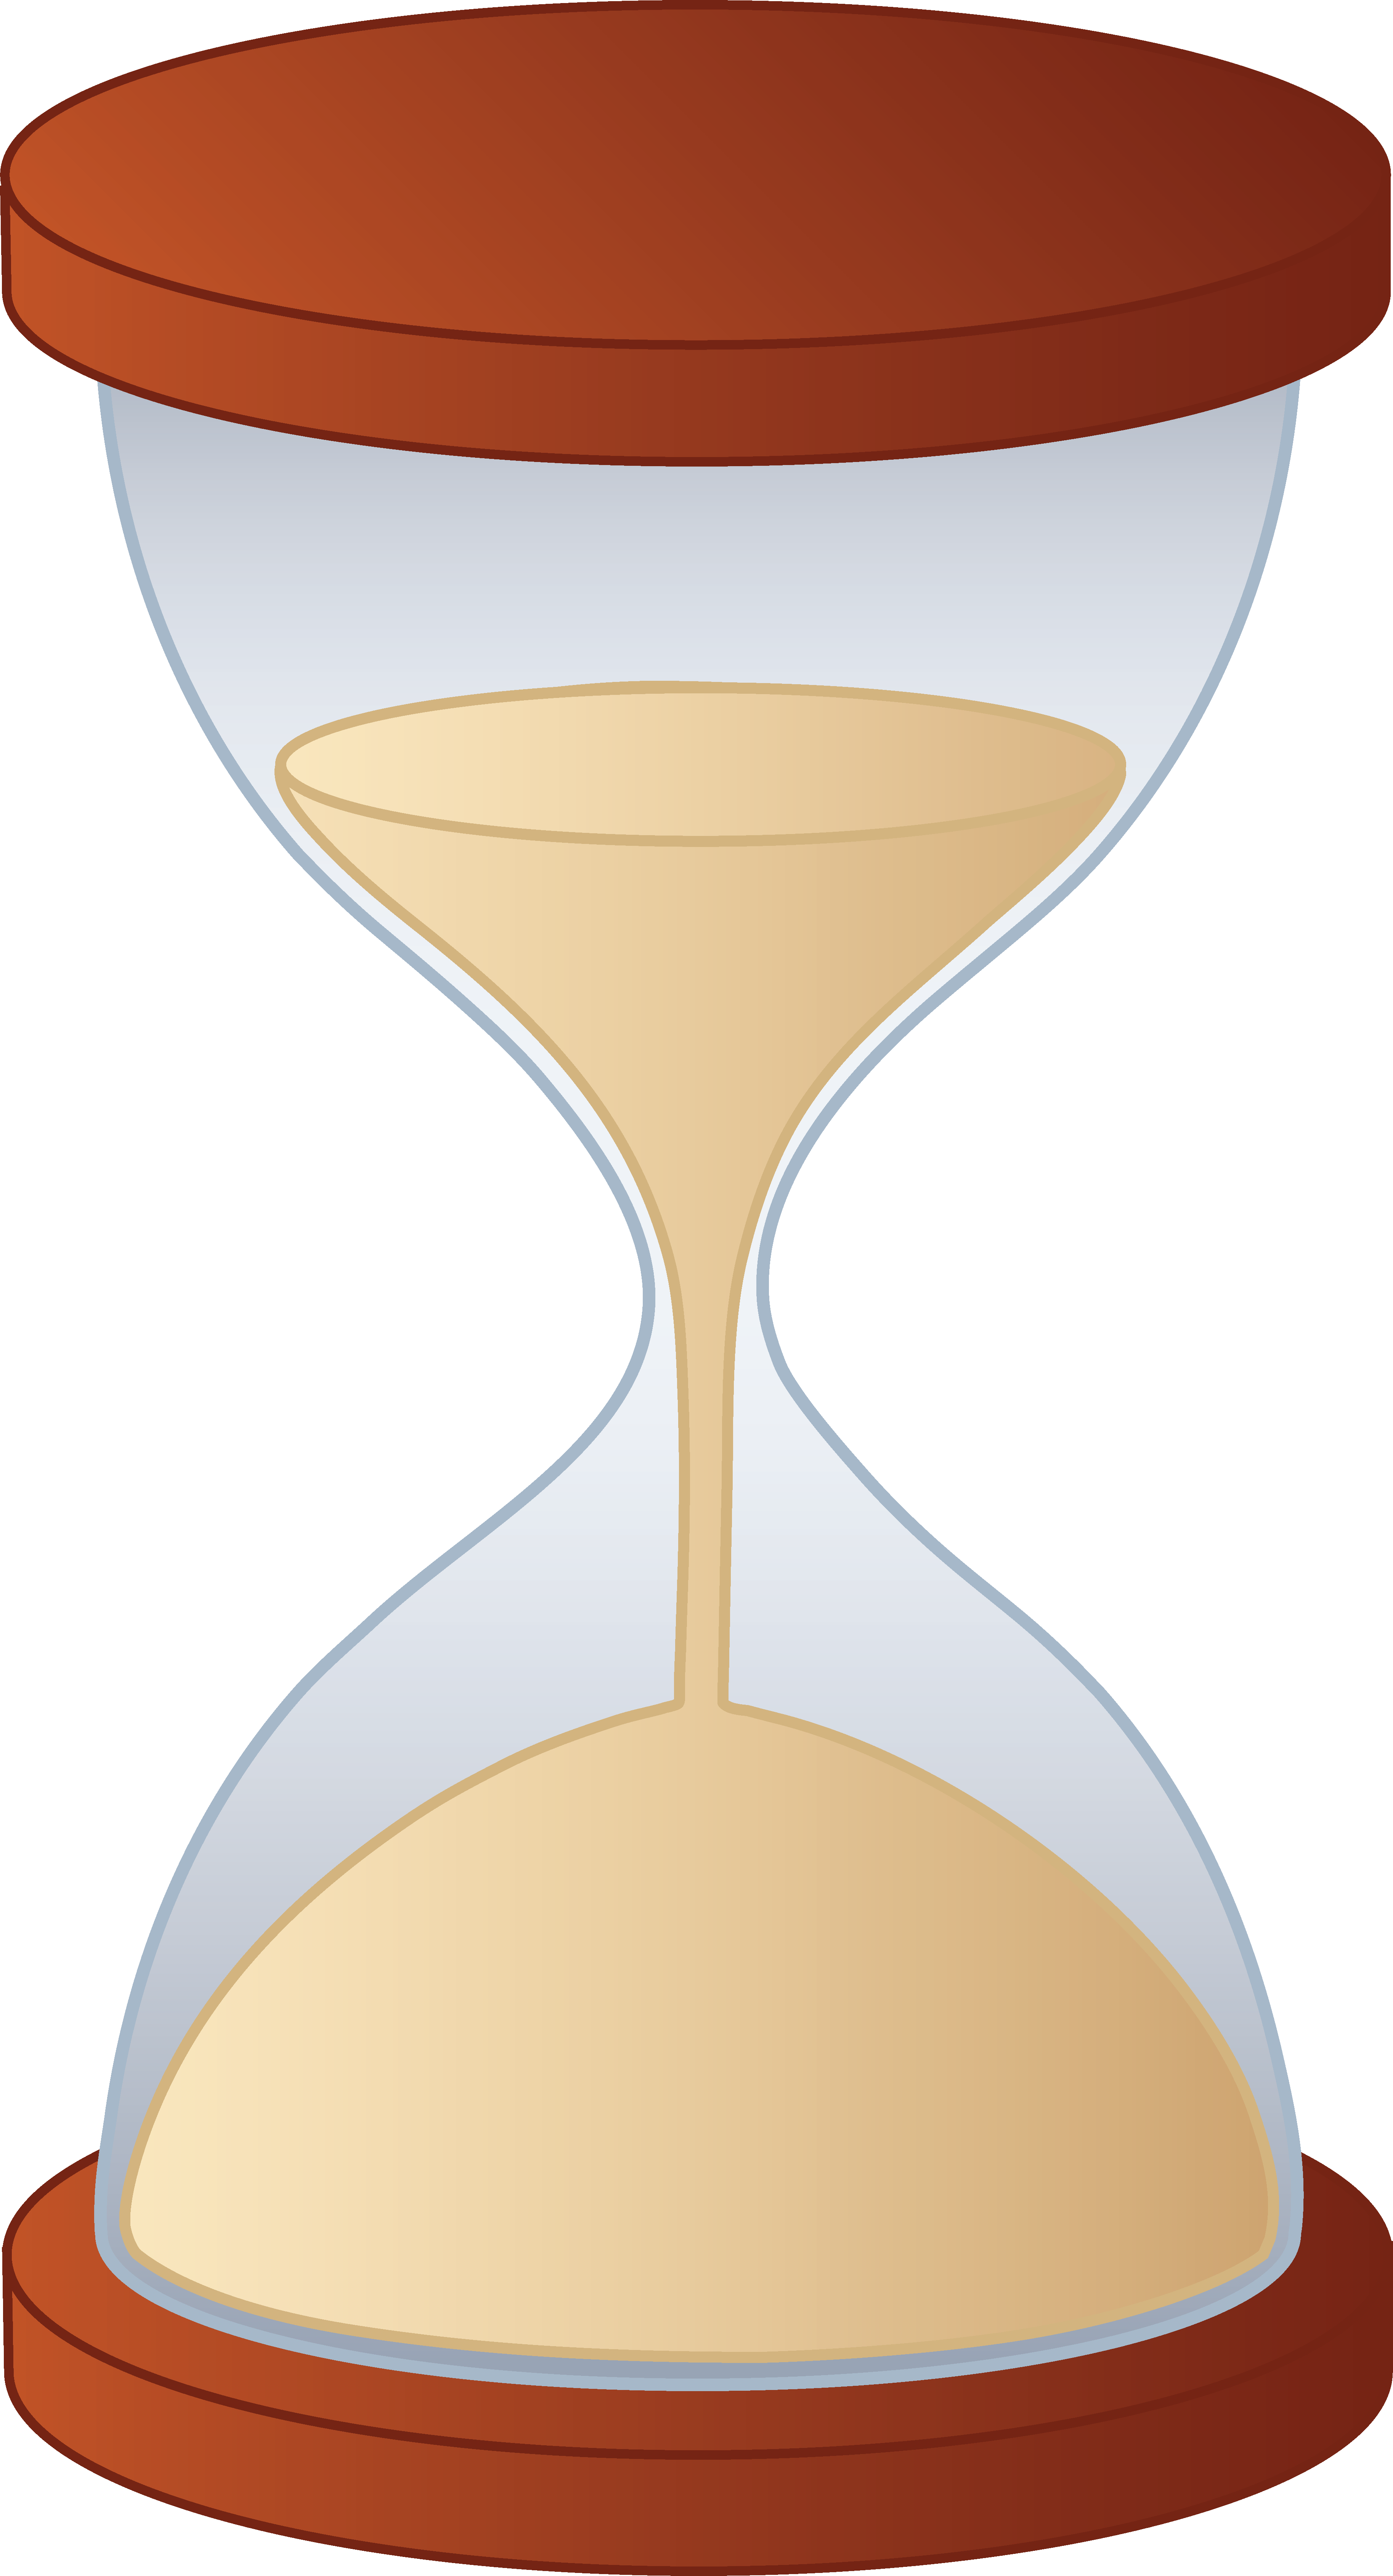 Hourglass Illustrations and Clipart. 3,052 hourglass royalty free Hourglass pictures clip art